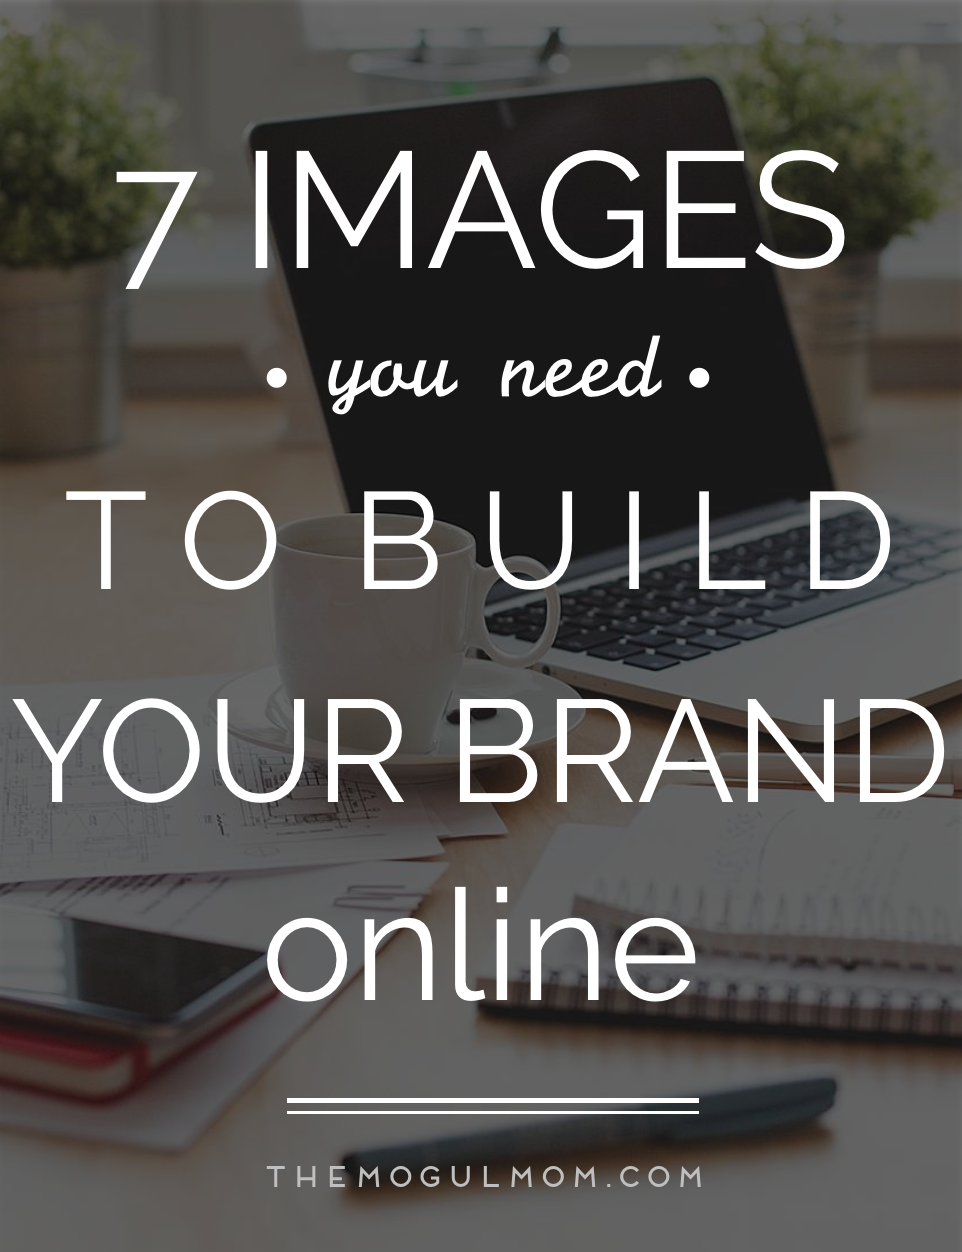 7 Images You Need to Build Your Brand Online